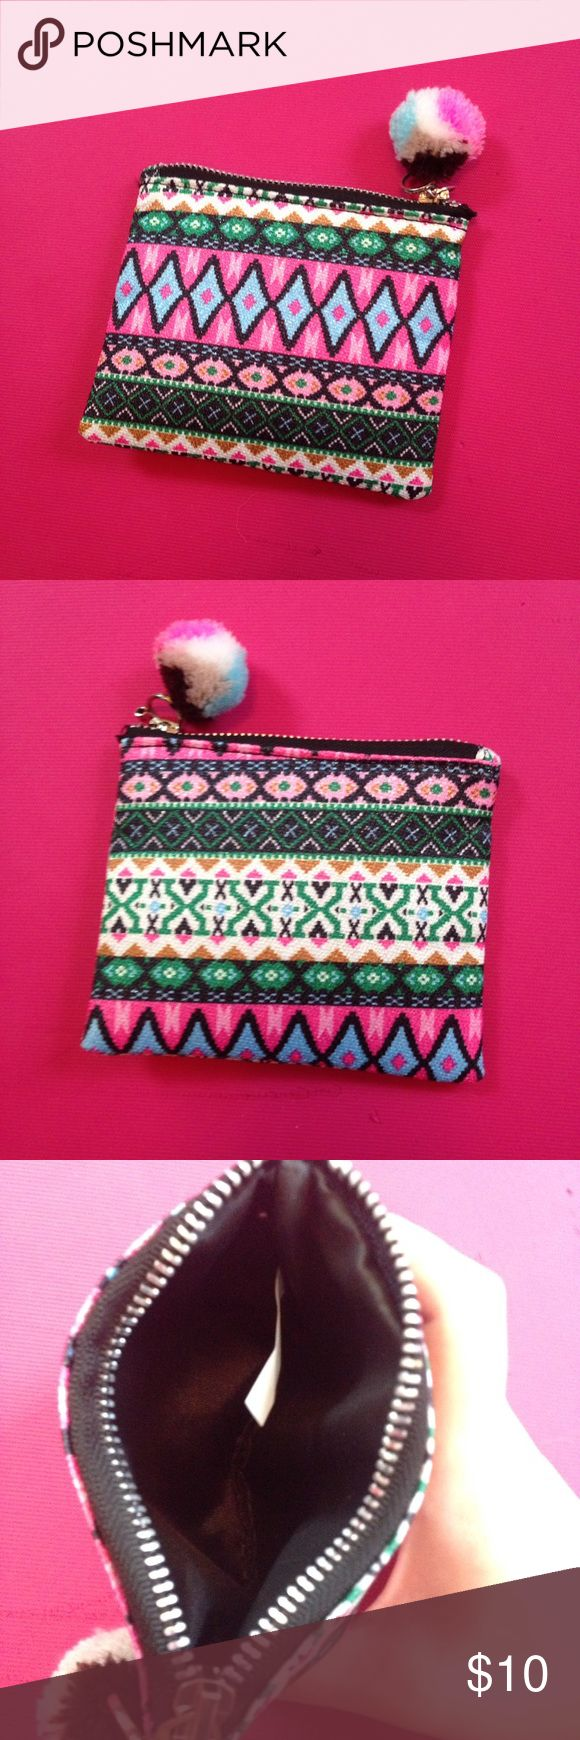 NWOT Tribal Aztec Print Wallet This little zip up coin purse is in perfect condition and never has been used.  Bought at a local boutique. Not Free People. The print is fun and trendy. Love this little guy! Bundle up, make an offer, and feel free to ask any questions 💕🛍 Free People Bags Wallets